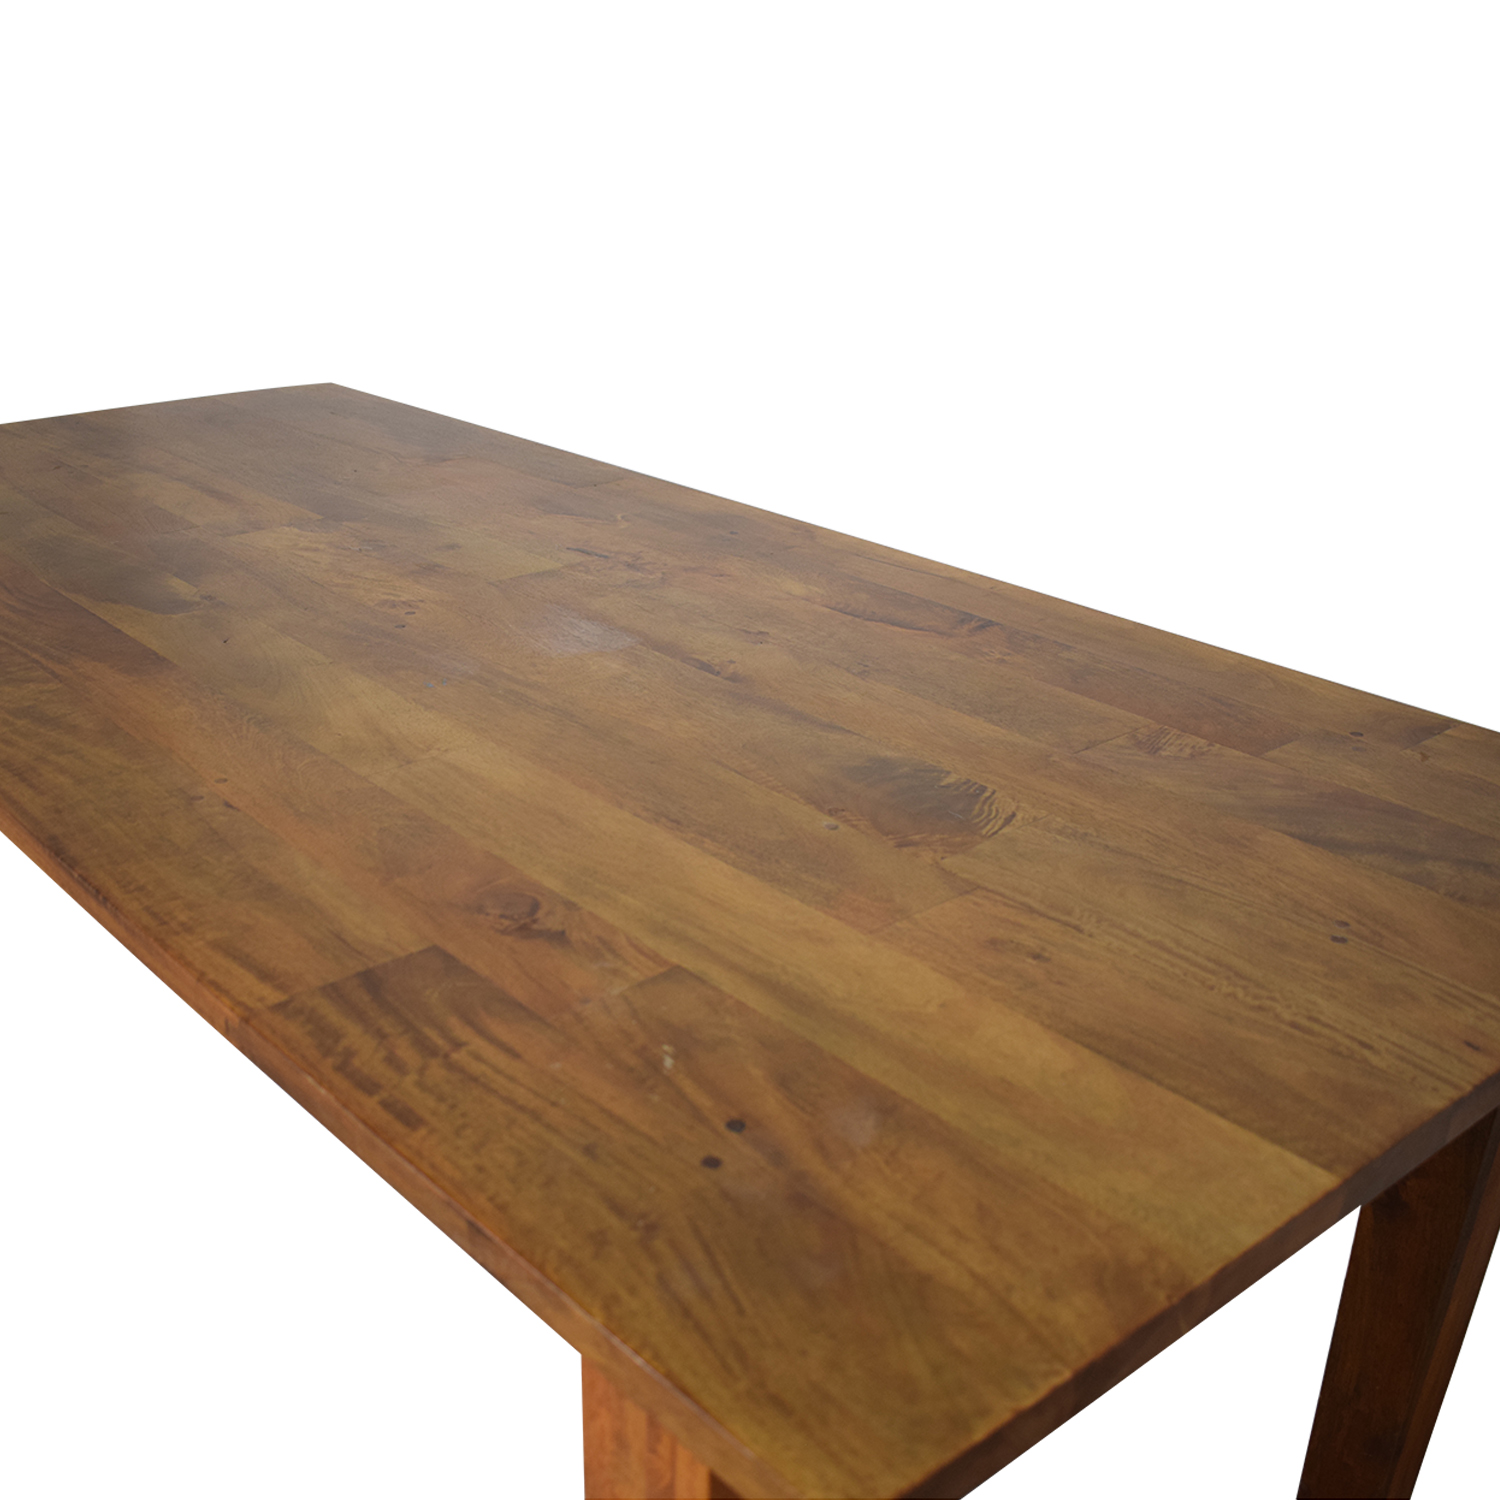 Crate & Barrel Crate & Barrel Basque Dining Table price